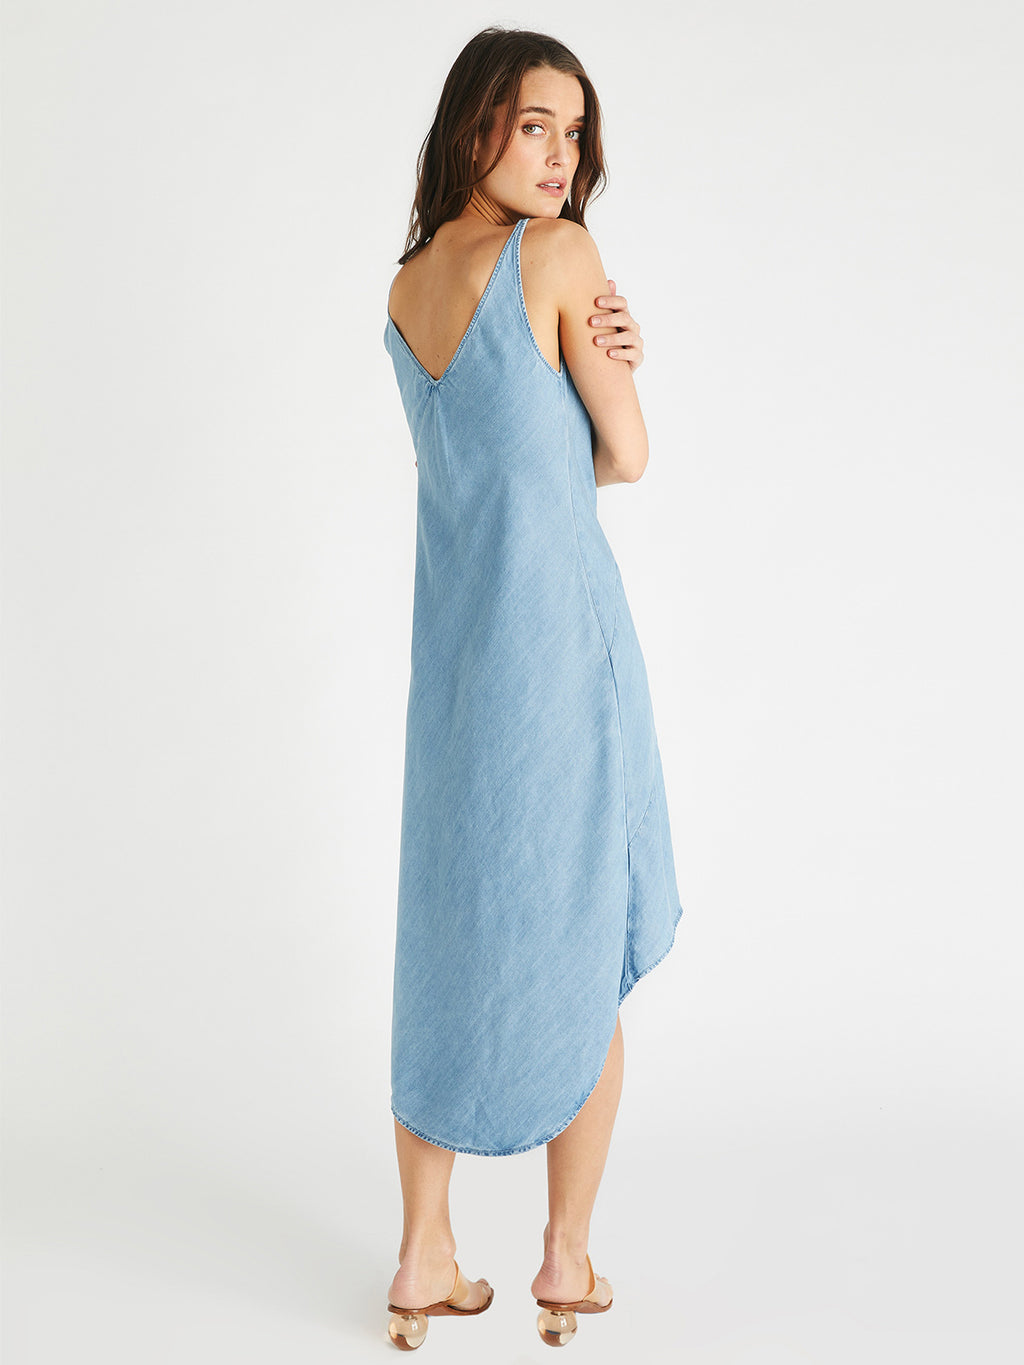 Shanti Slip Dress | Day Break